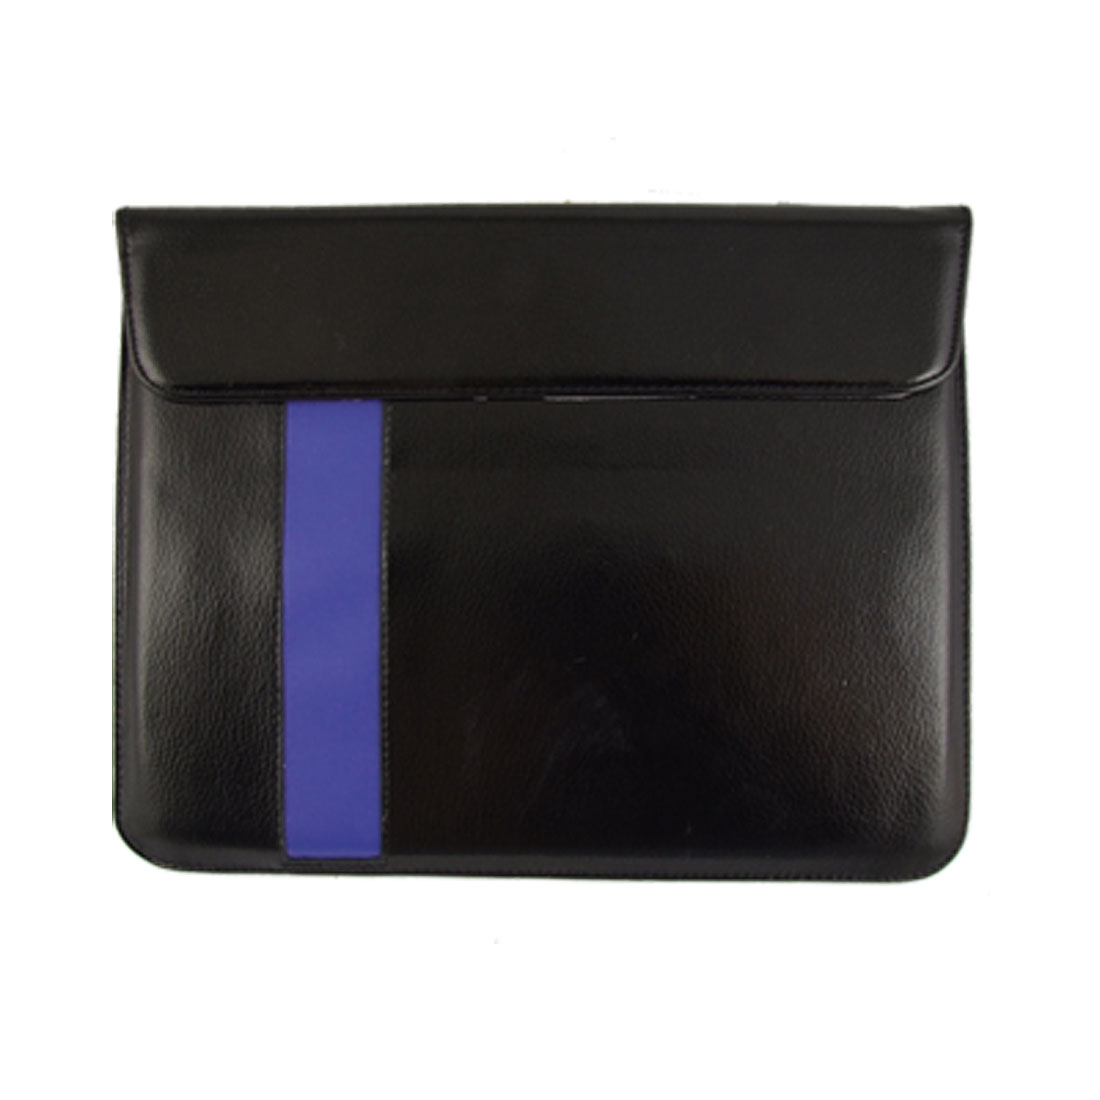 Magnetic Black Blue Faux Leather Pouch Holder for iPad 2G